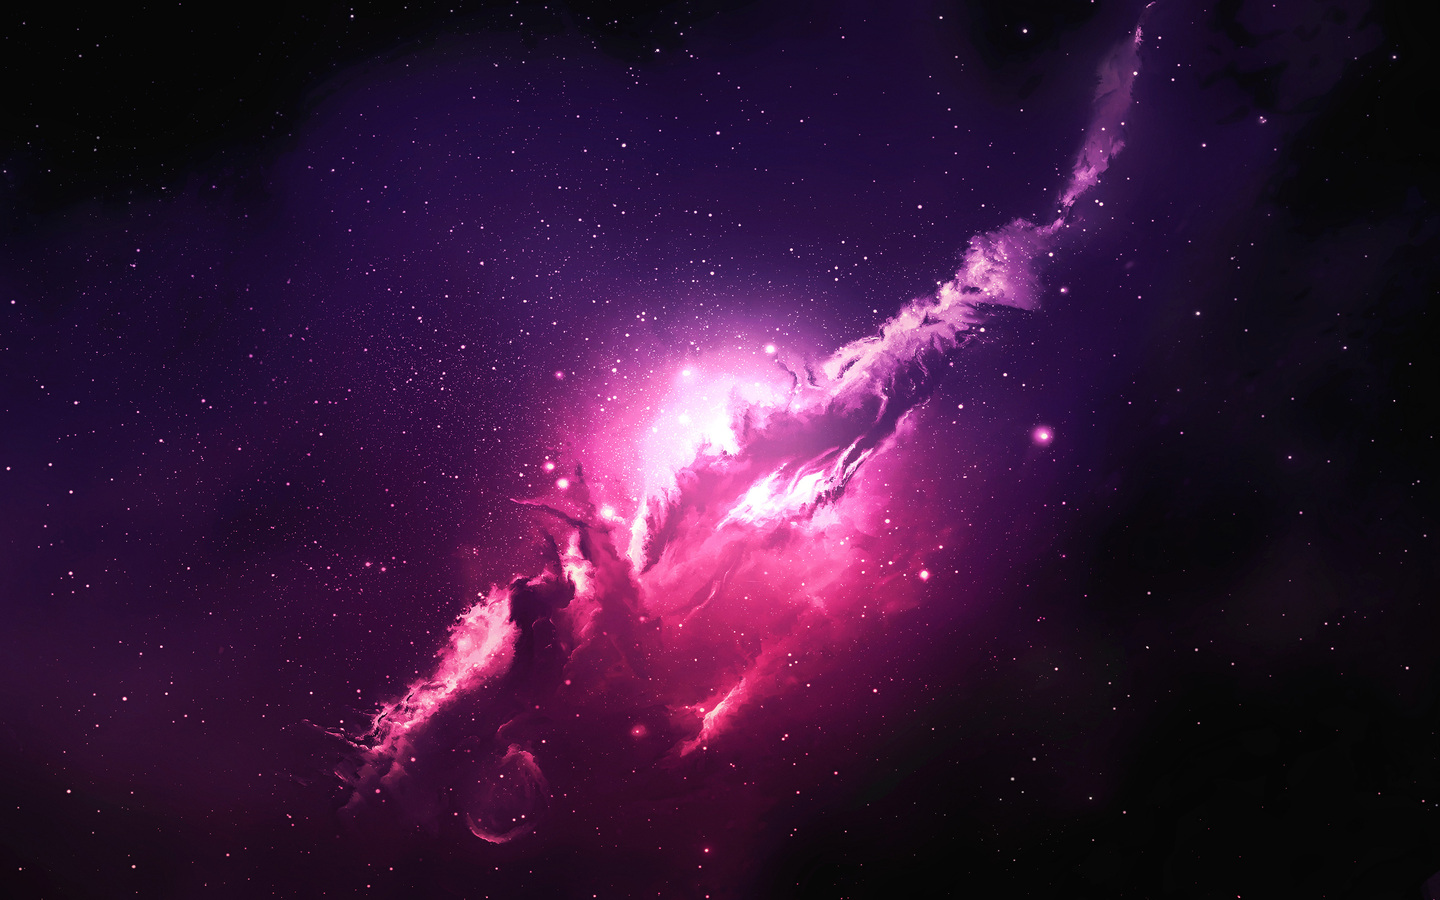 1440x900 nebula stars universe galaxy space 4k 1440x900 resolution